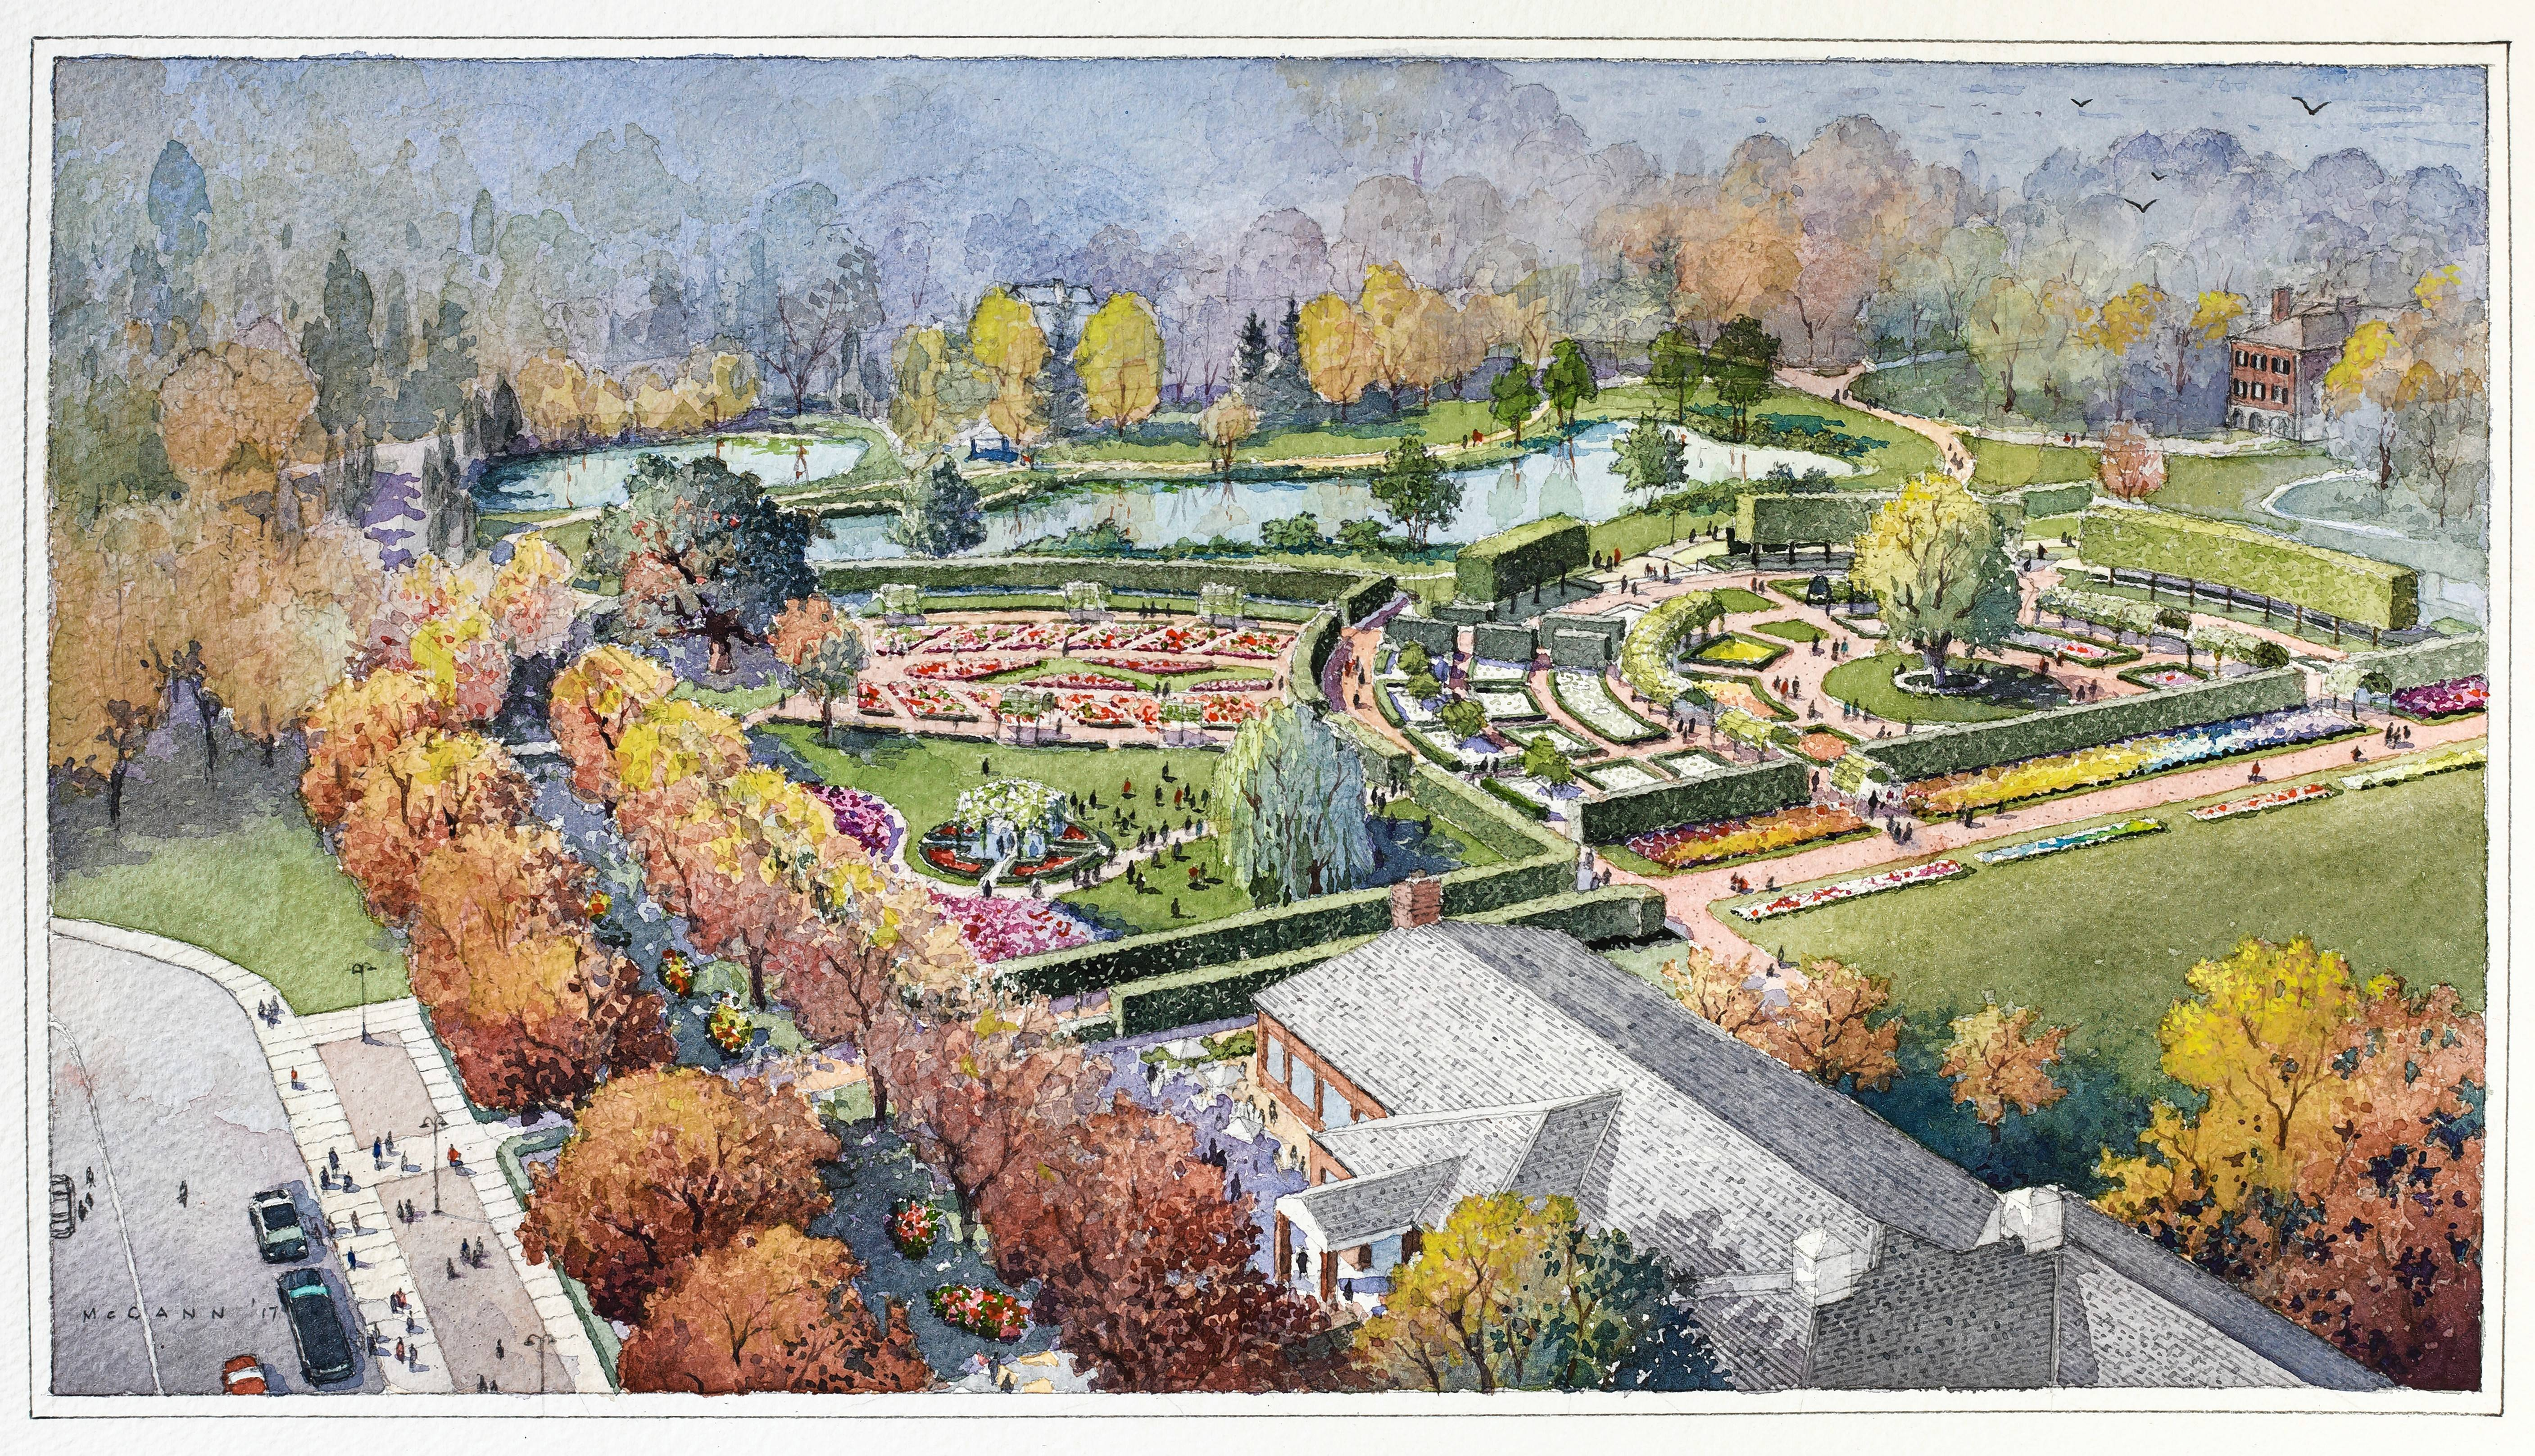 The $25 million Project New Leaf will redesign Cantigny's gardens and make the grounds more accessible to visitors.